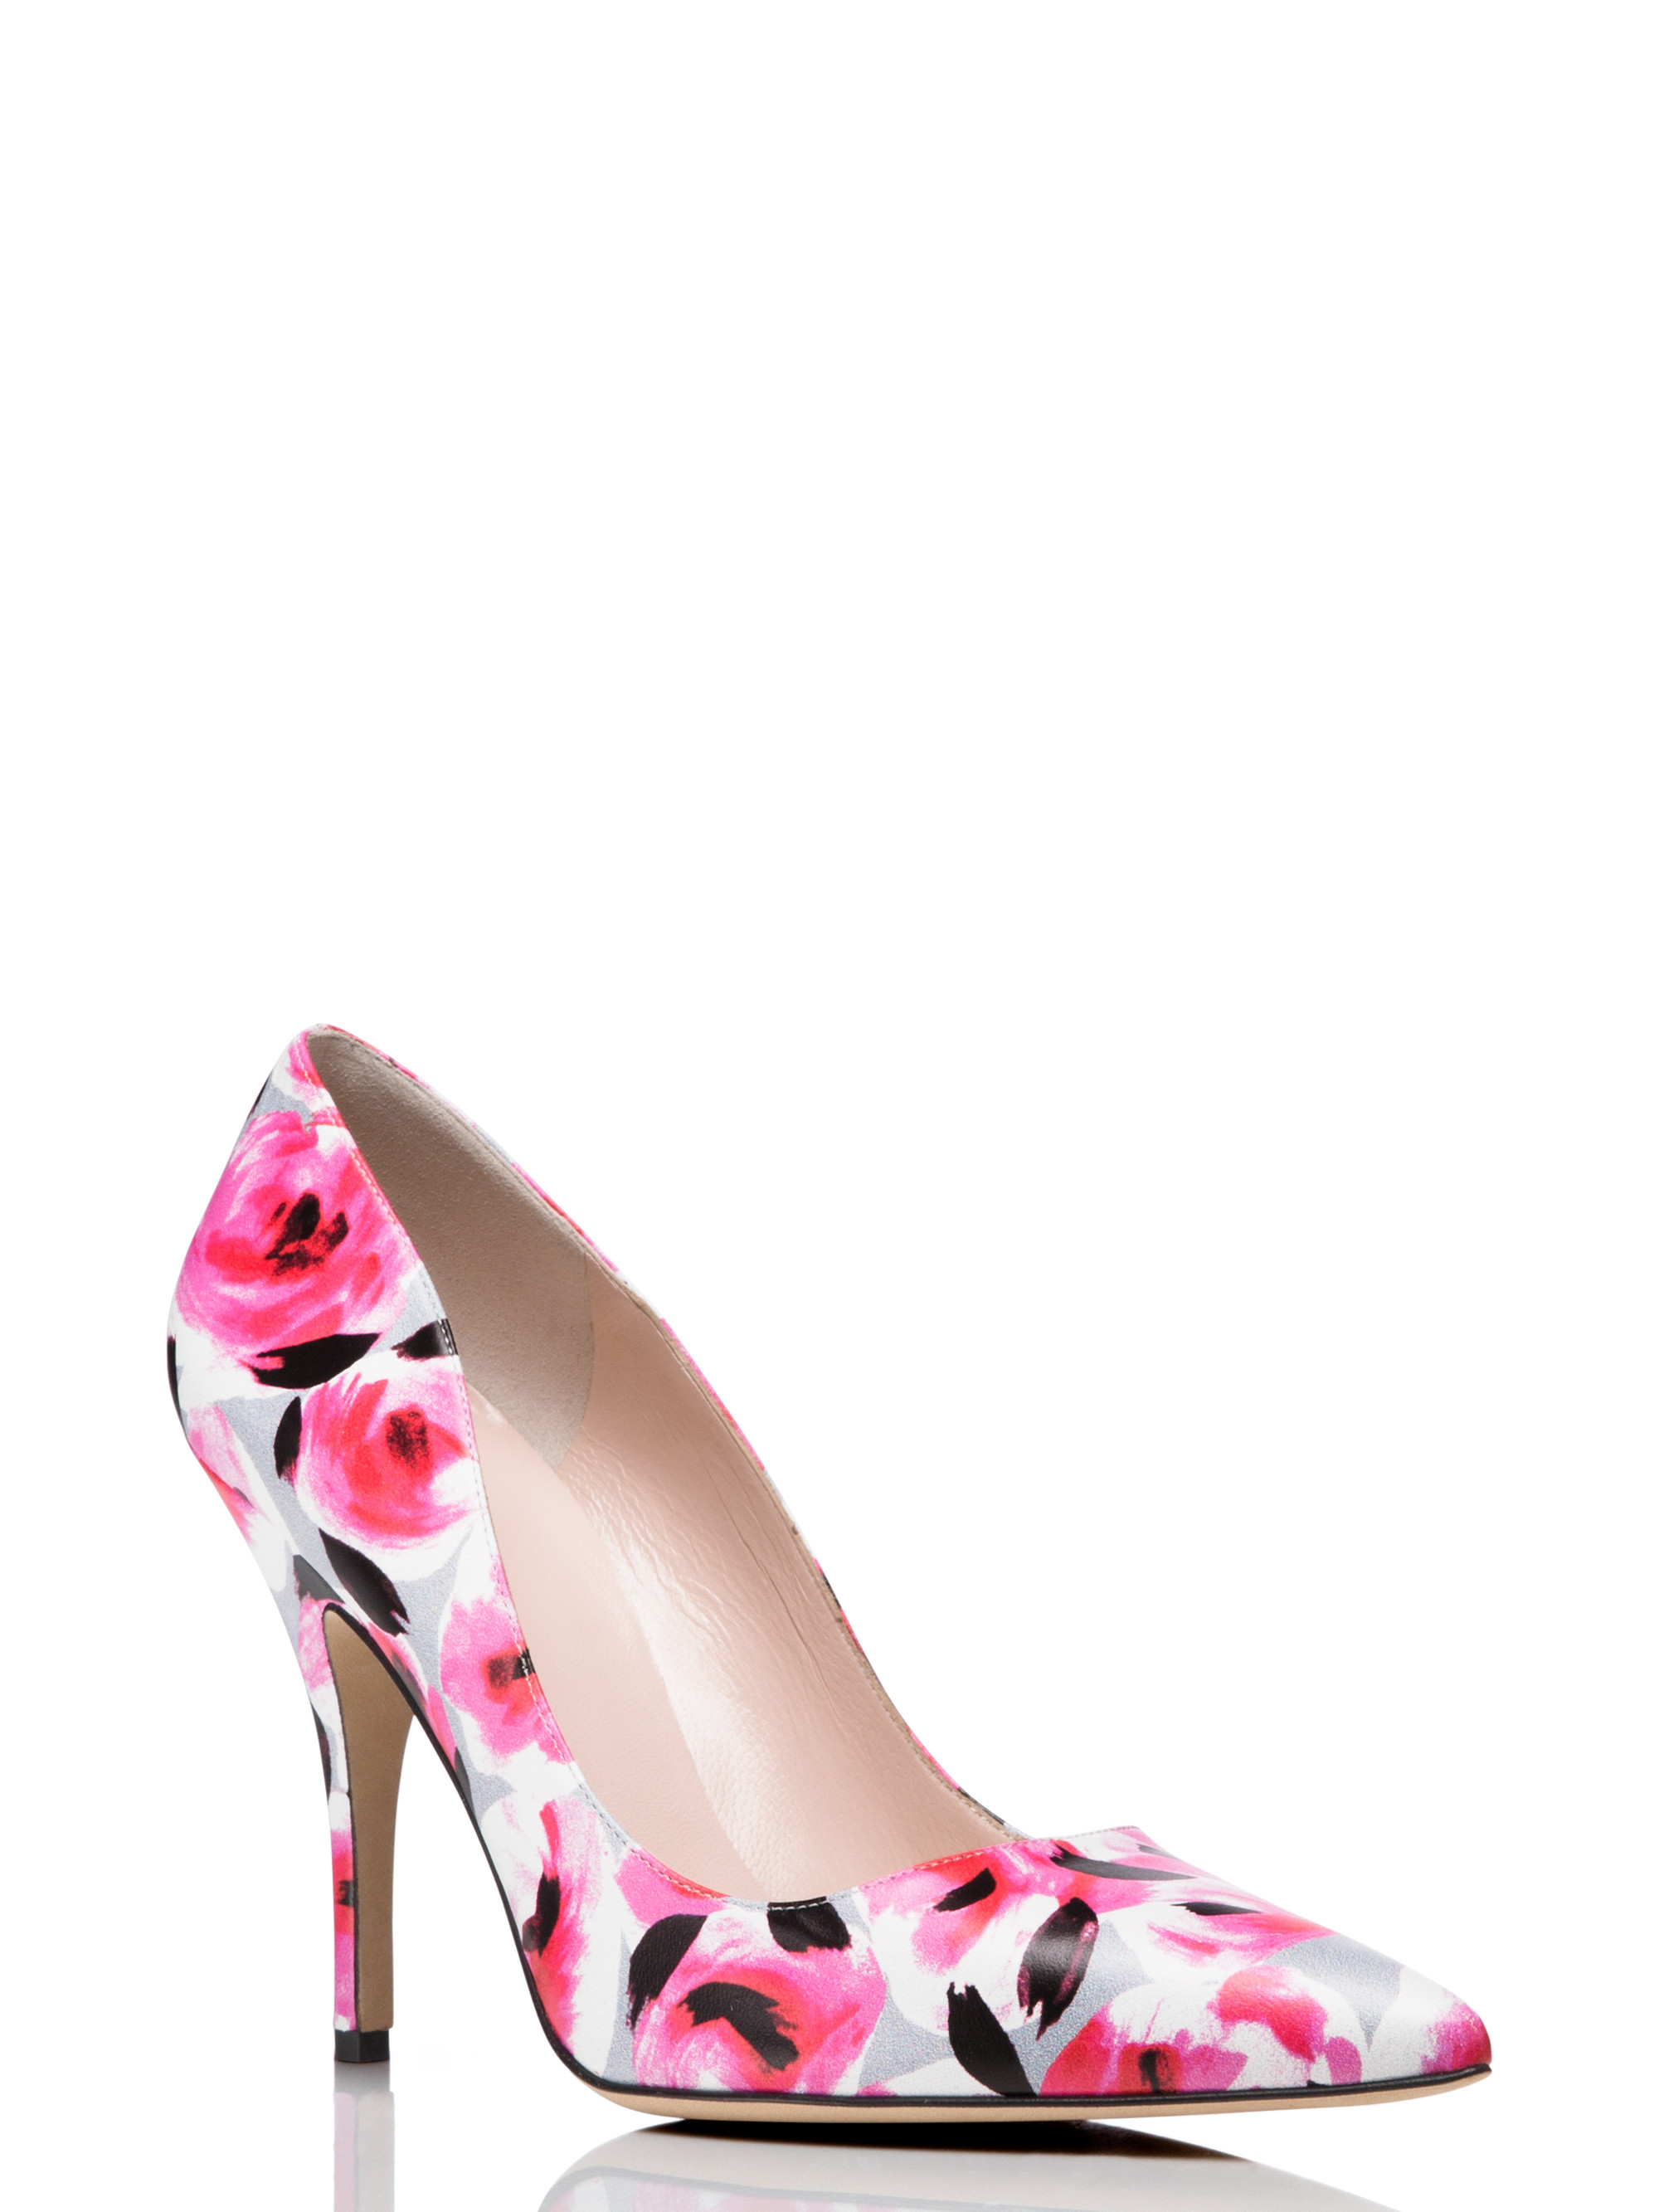 Find great deals on eBay for Modcloth Shoes in Women's Clothing, Shoes and Heels. Shop with confidence.